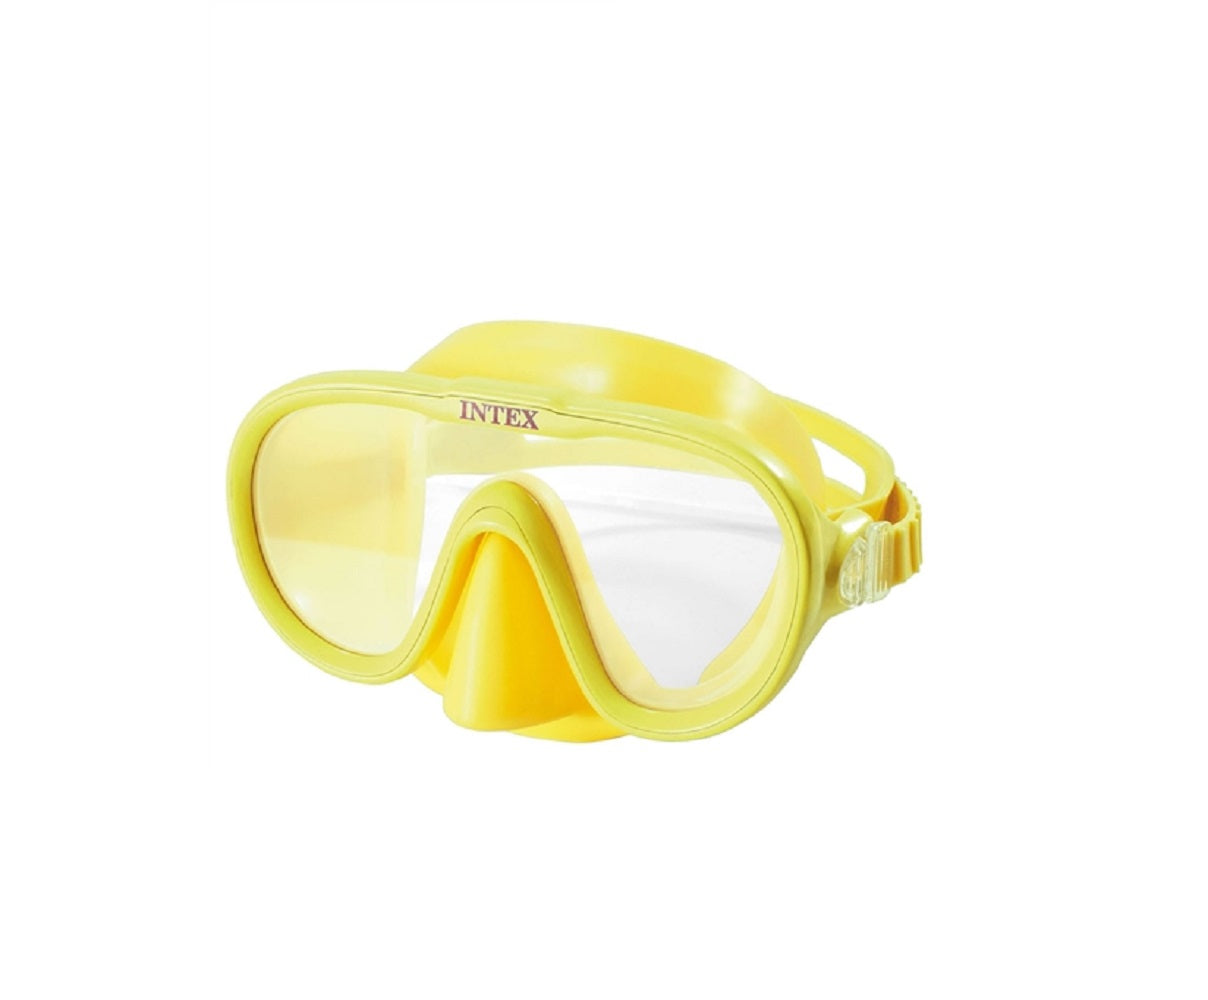 Intex  55916E Sea Scan Swim Mask, Assorted color